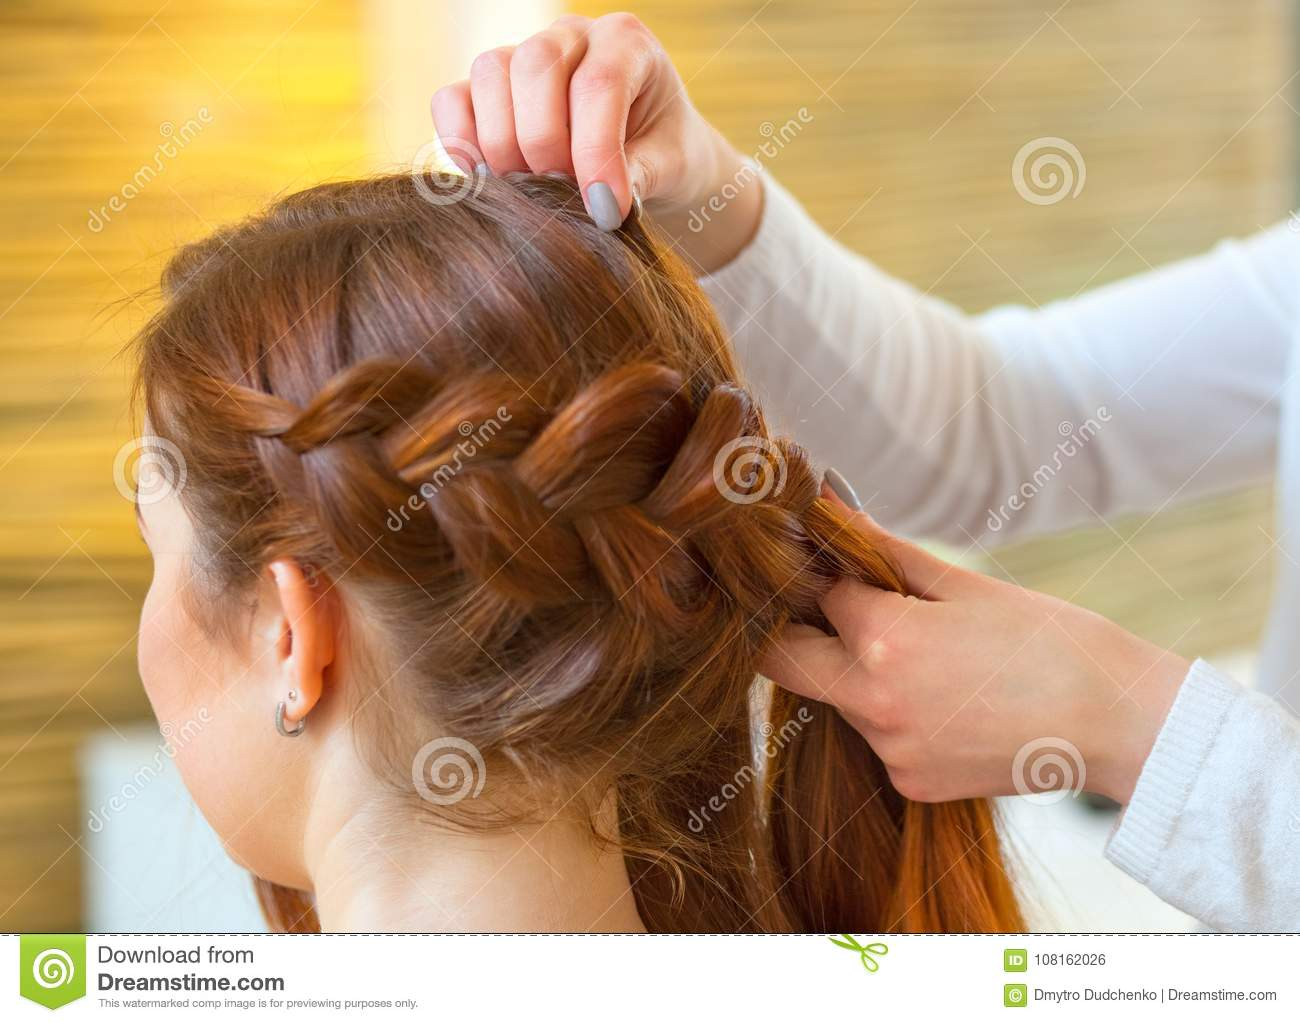 Beautiful Girl With Long Red Hair Hairdresser Weaves A Braid In A